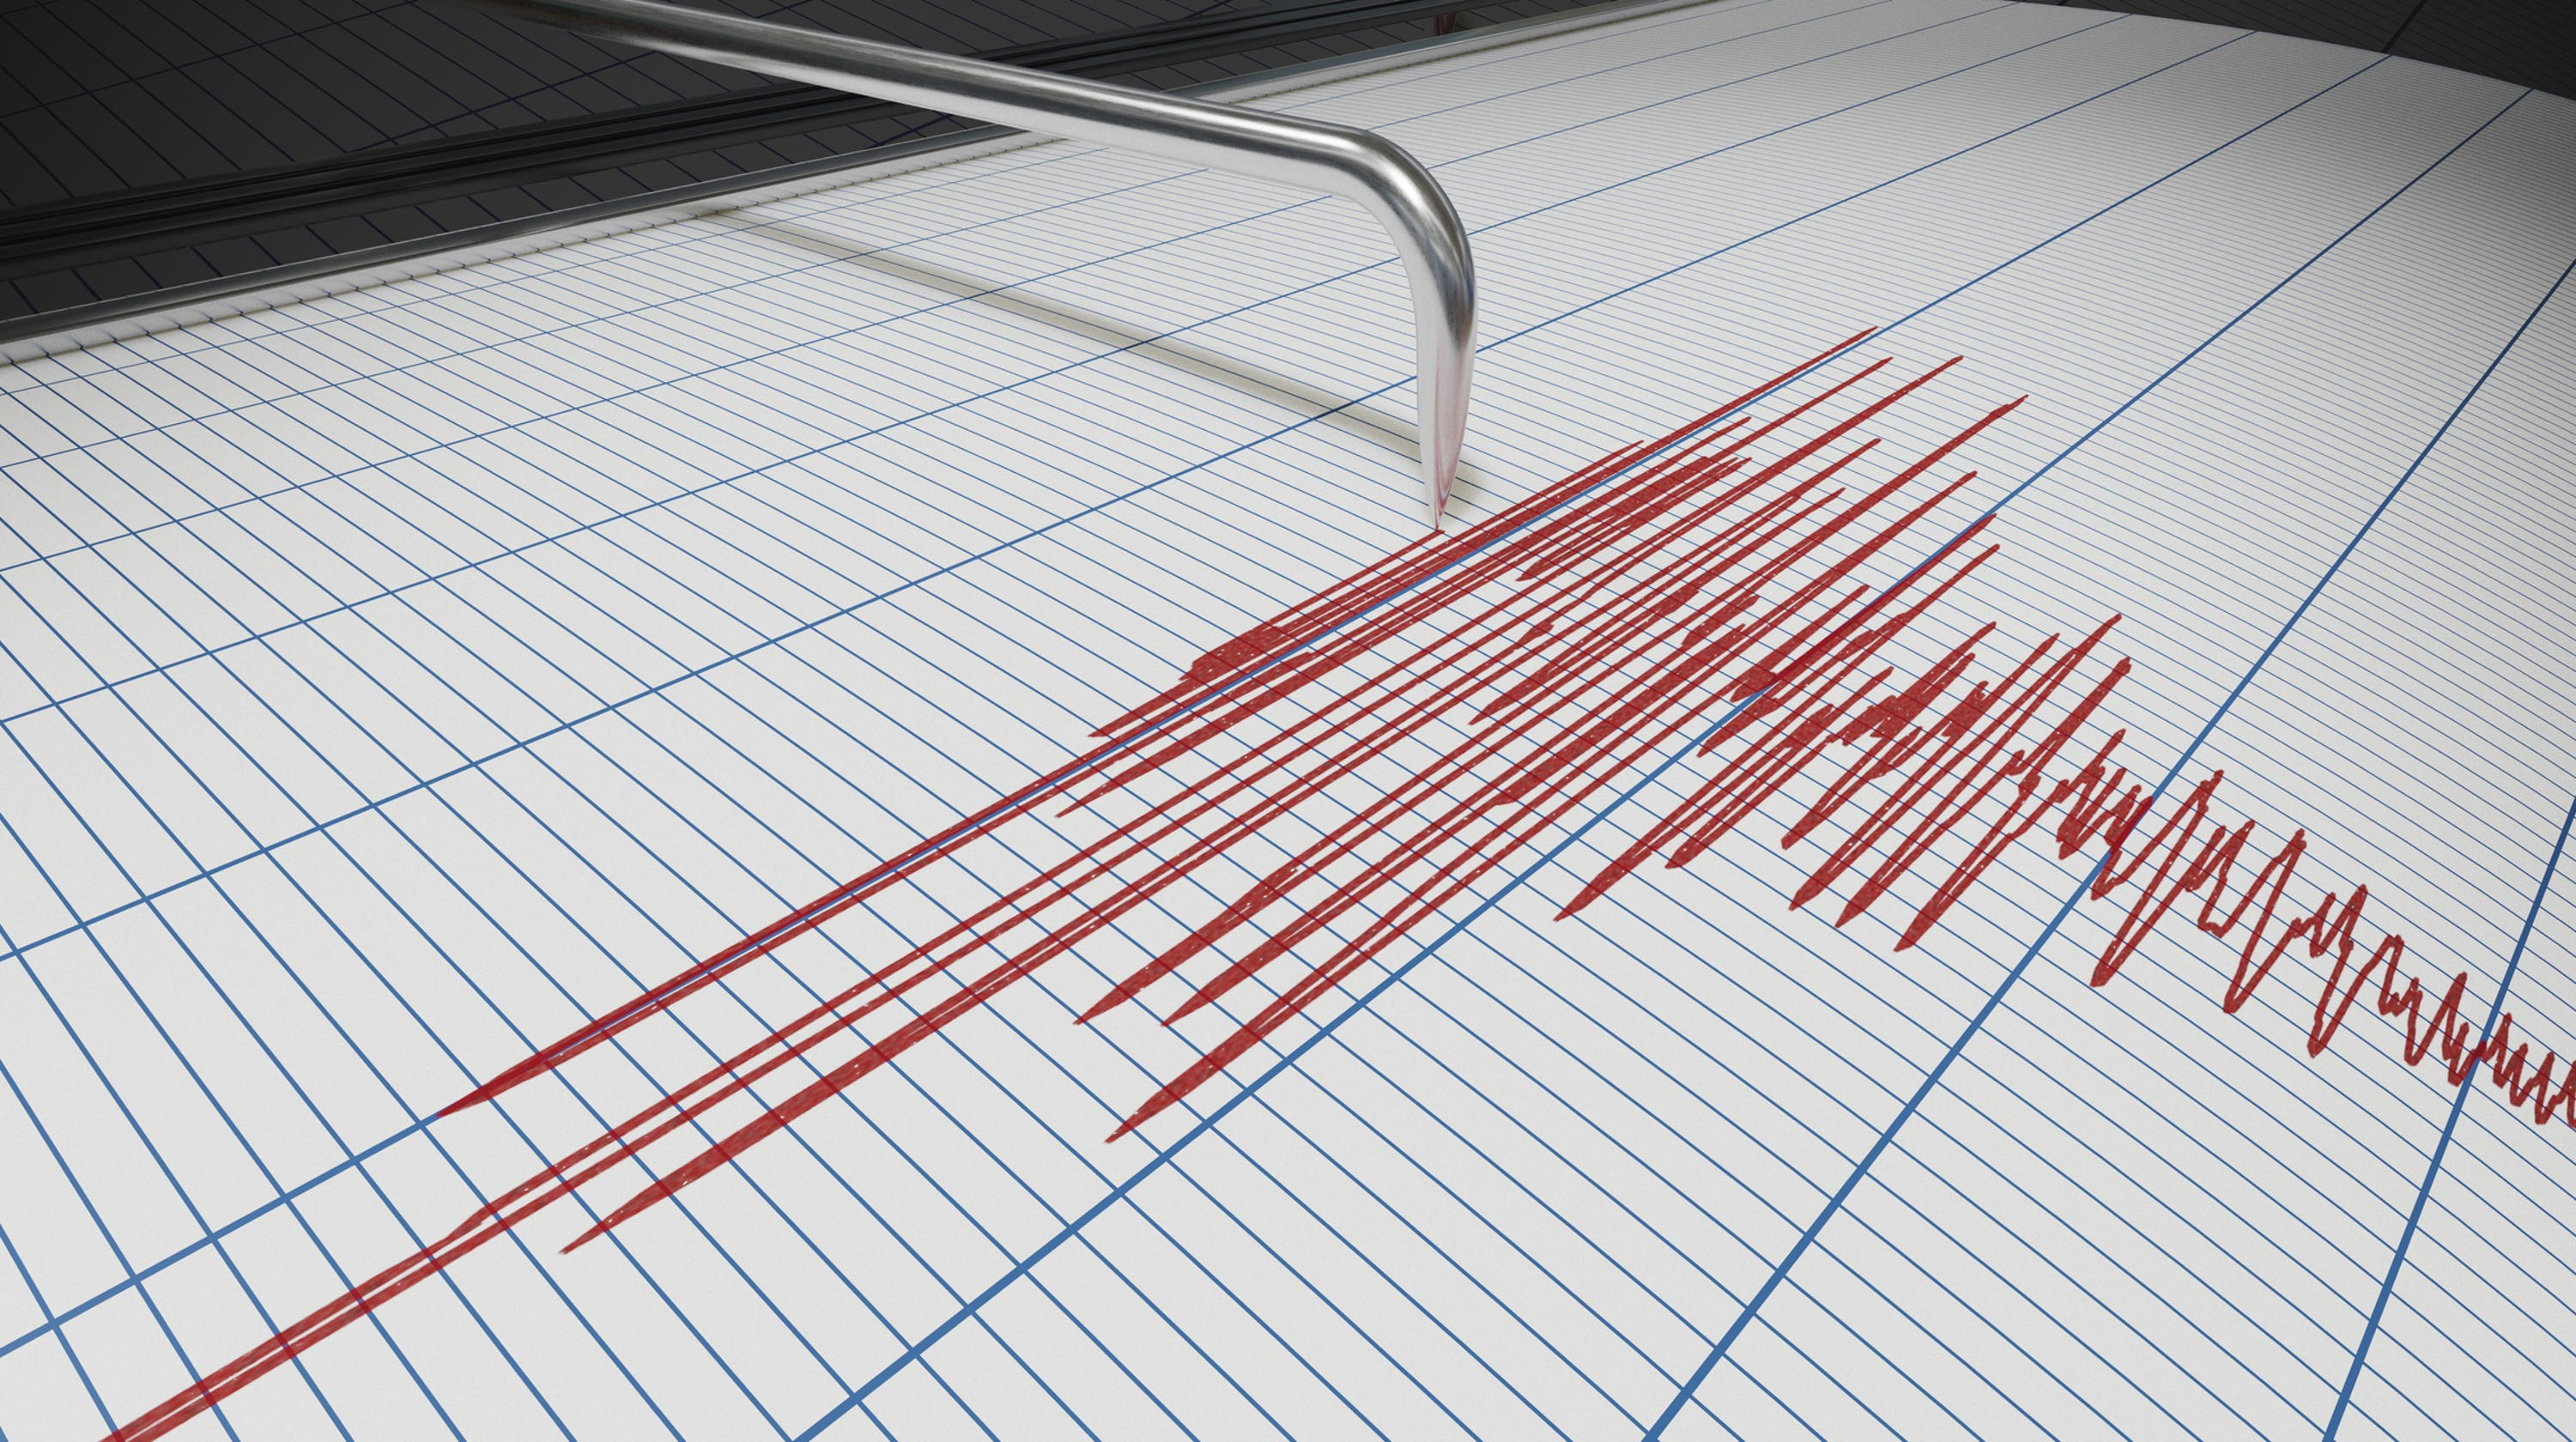 Earthquake, rumble or something else? Seismologist says